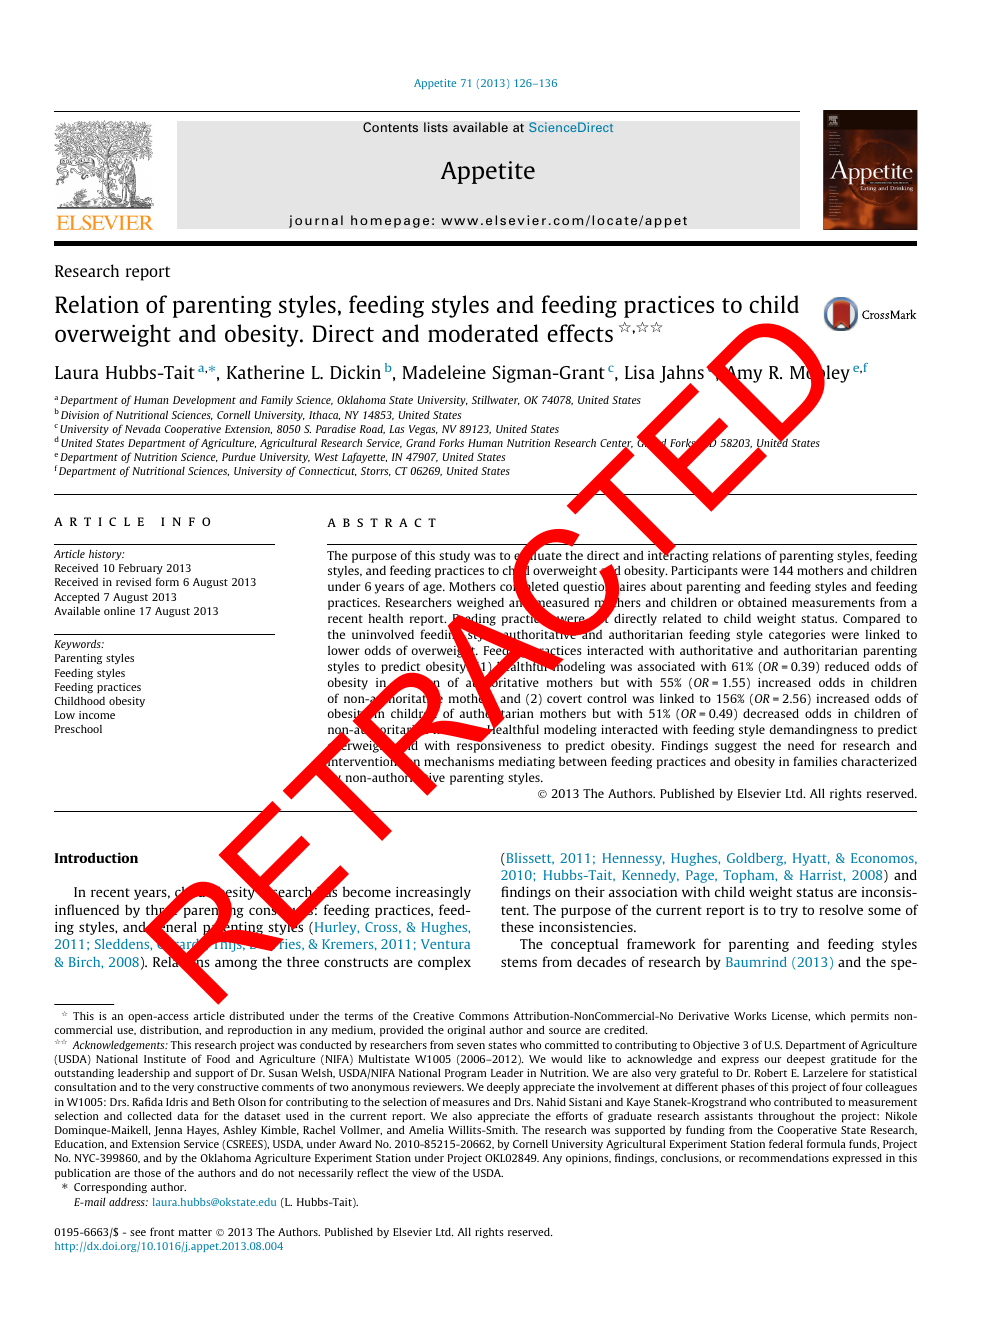 Why Parenting Styles Matter When >> Retracted Relation Of Parenting Styles Feeding Styles And Feeding